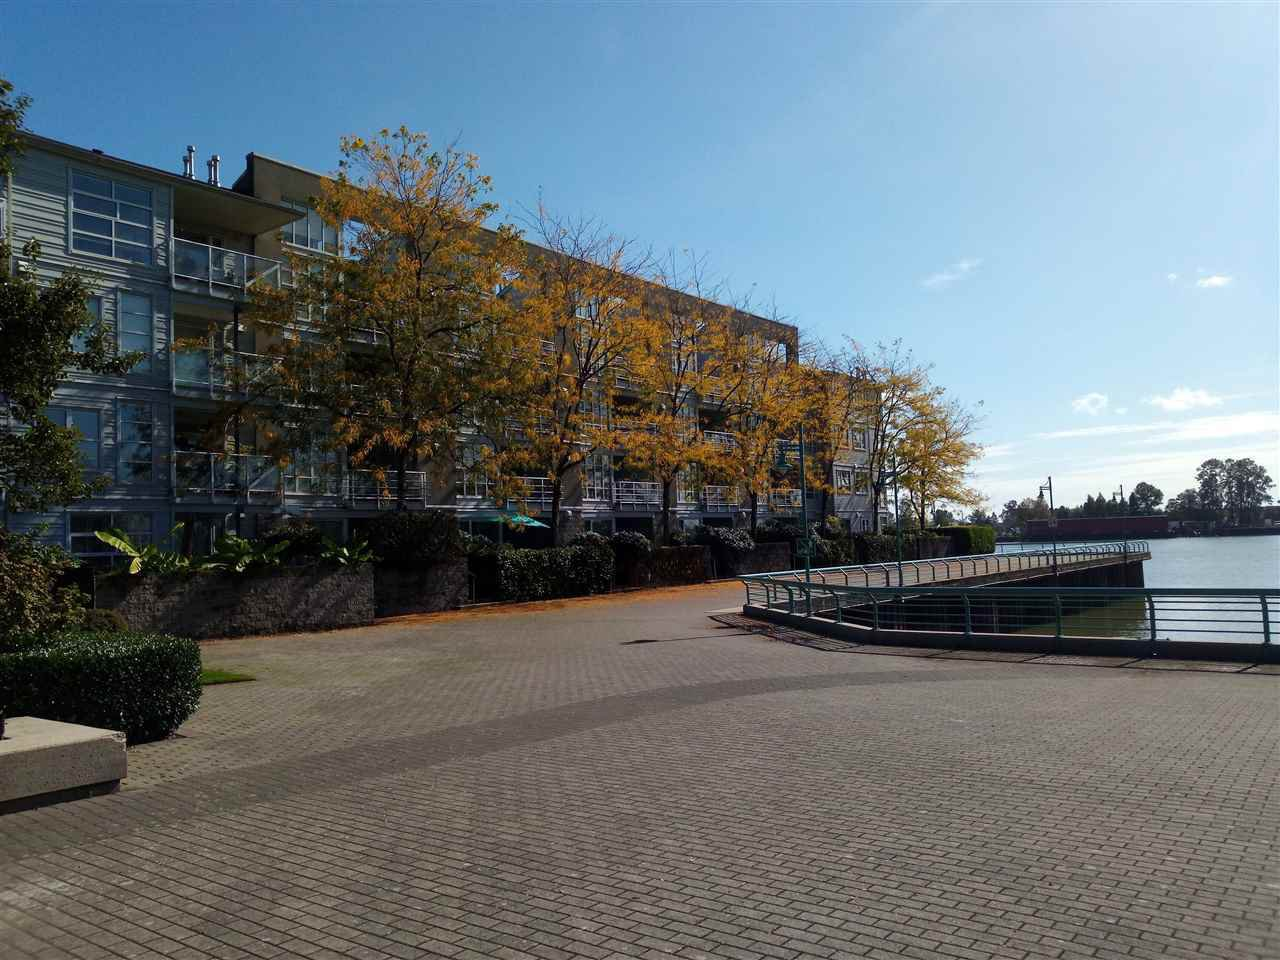 Main Photo: 303 - 2020 E Kent Ave in Vancouver: South Marine Condo for sale (Vancouver East)  : MLS®# R2436380